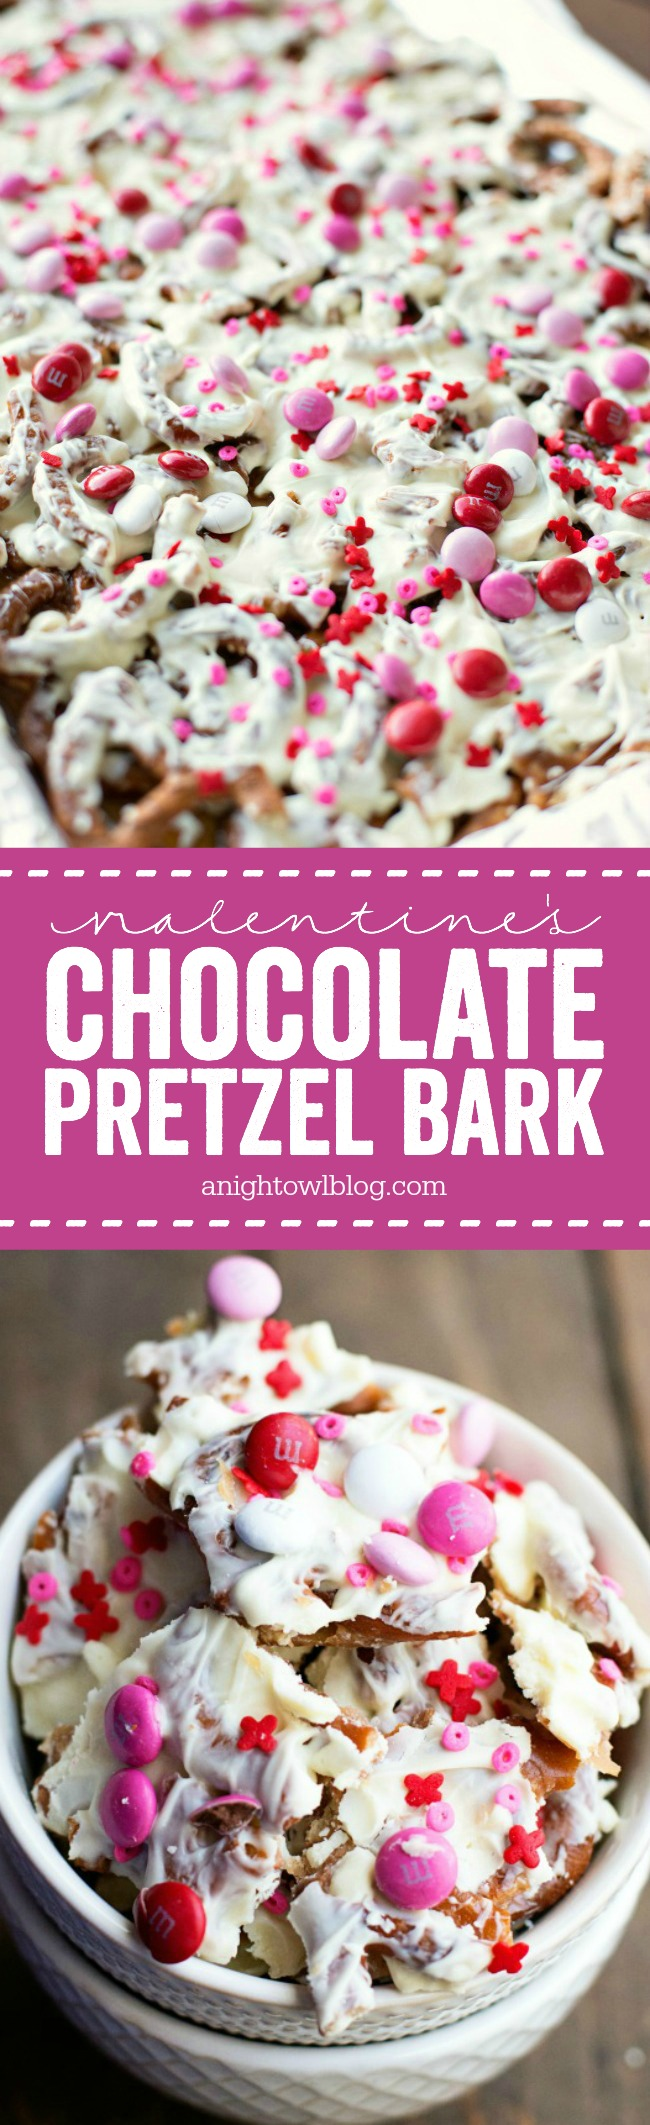 This Valentine's Chocolate Pretzel Bark is the perfect combination of salty and sweet in one delicious treat!